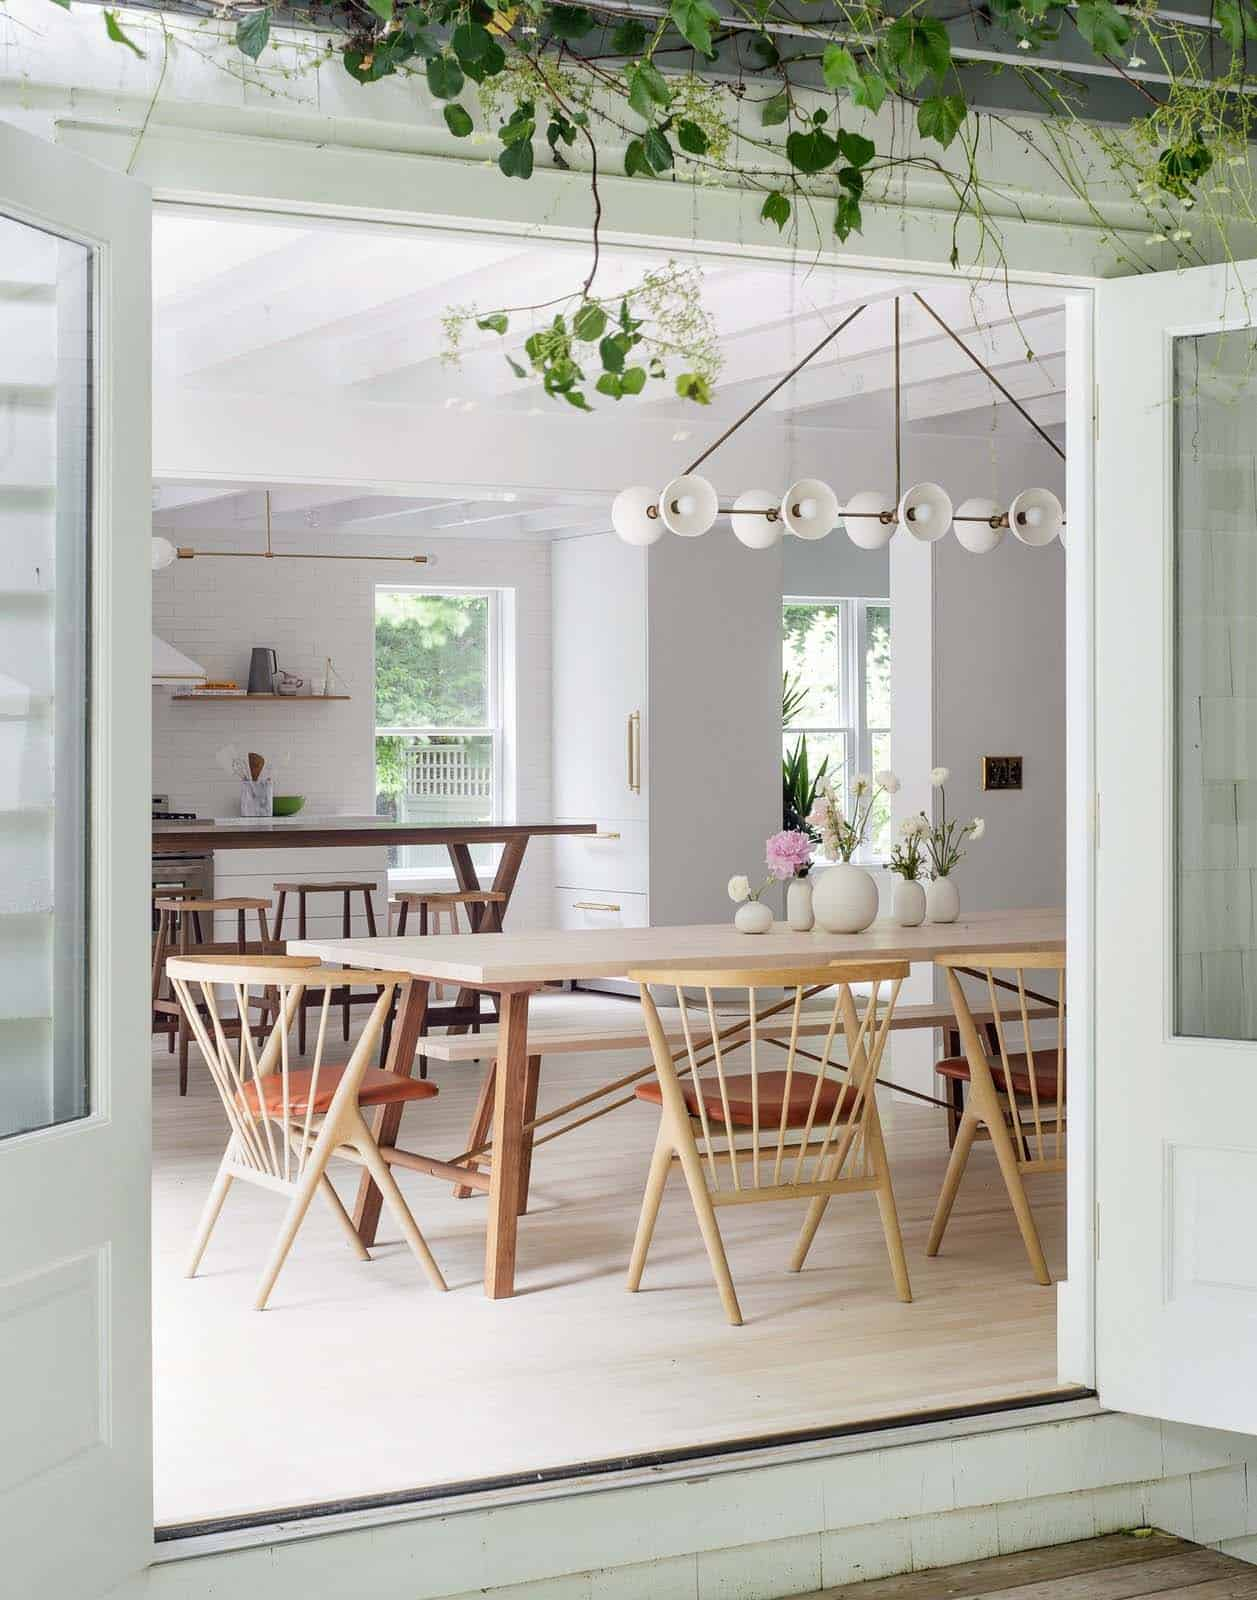 Scandinavian-Style Beach Retreat-Jessica Helgerson Interior Design-06-1 Kindesign